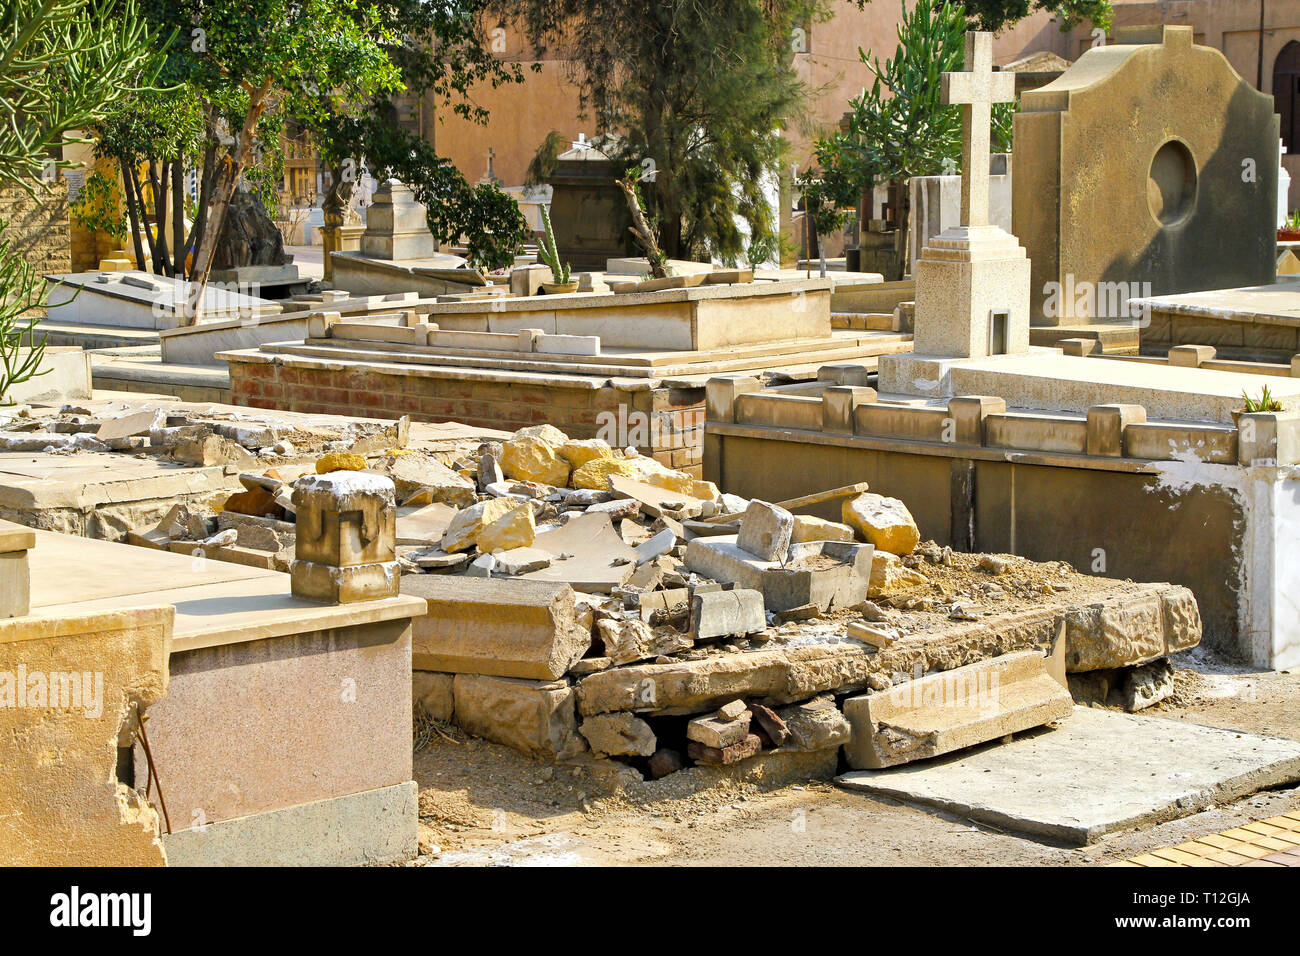 Destroyed and ruined grave at Christian cemetery - Stock Image